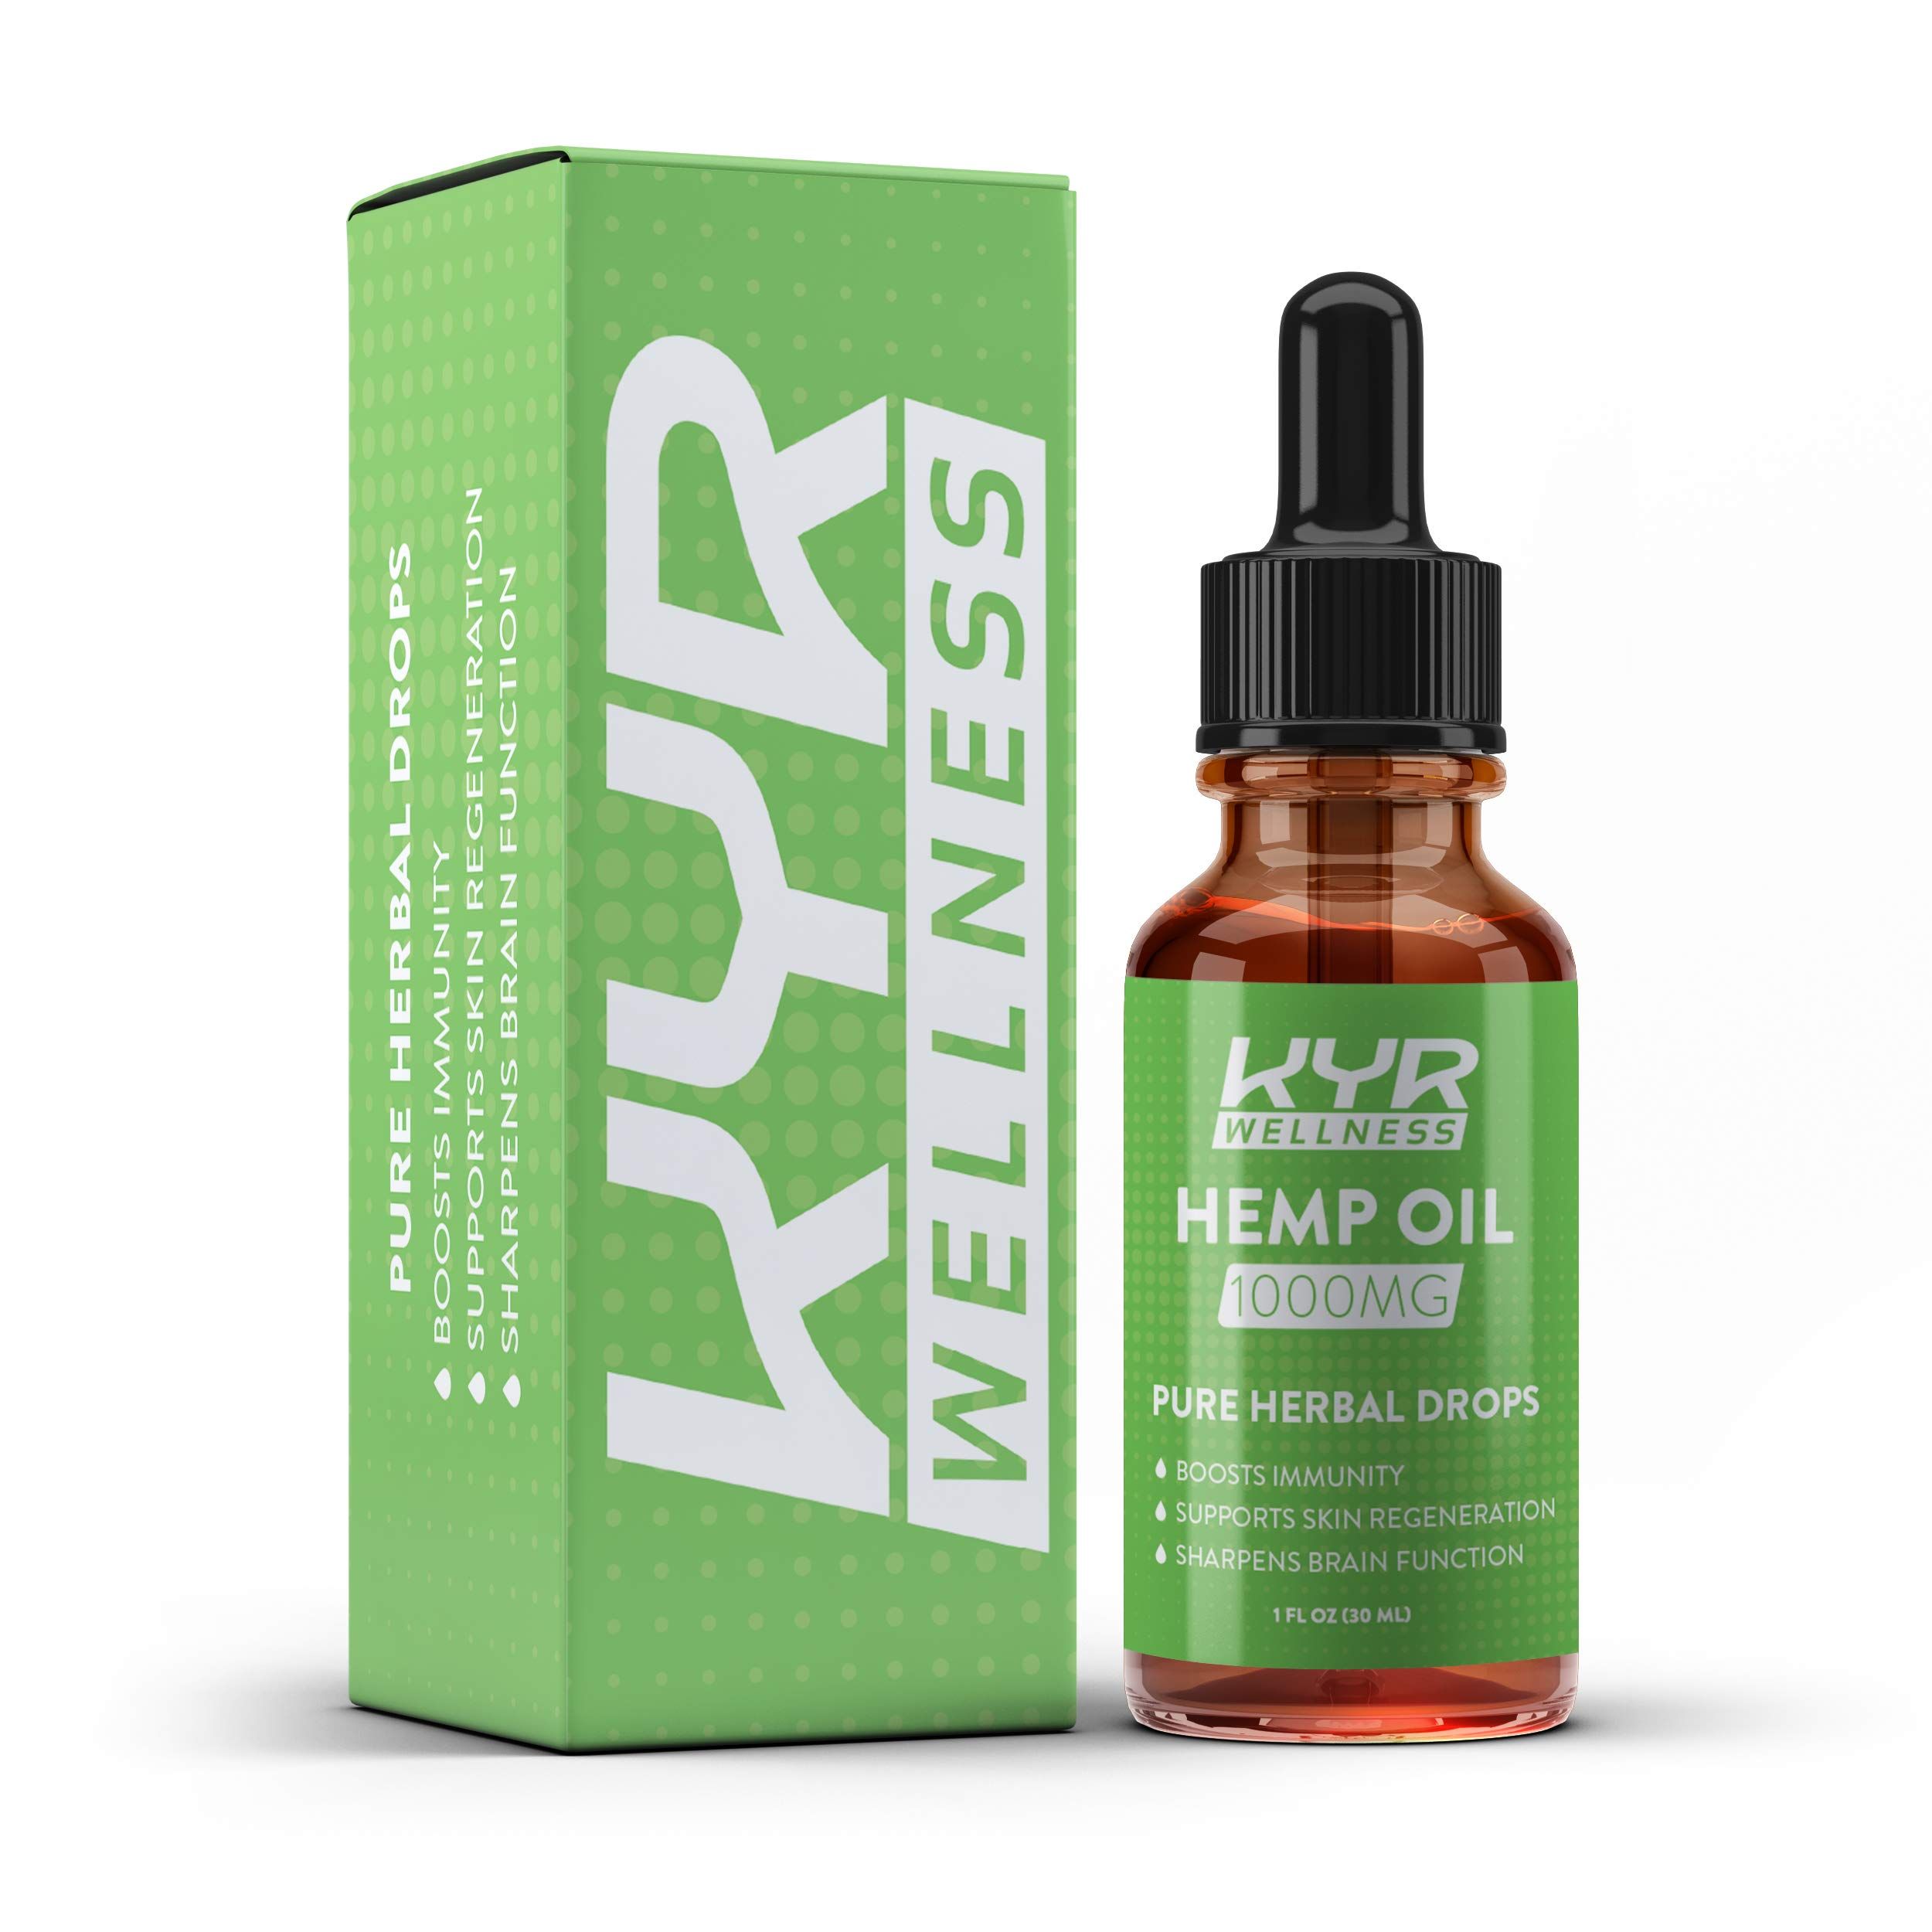 KYR Hemp Oil for Pain and Anxiety Relief, Also Helps with Sleep, Boost Immunity